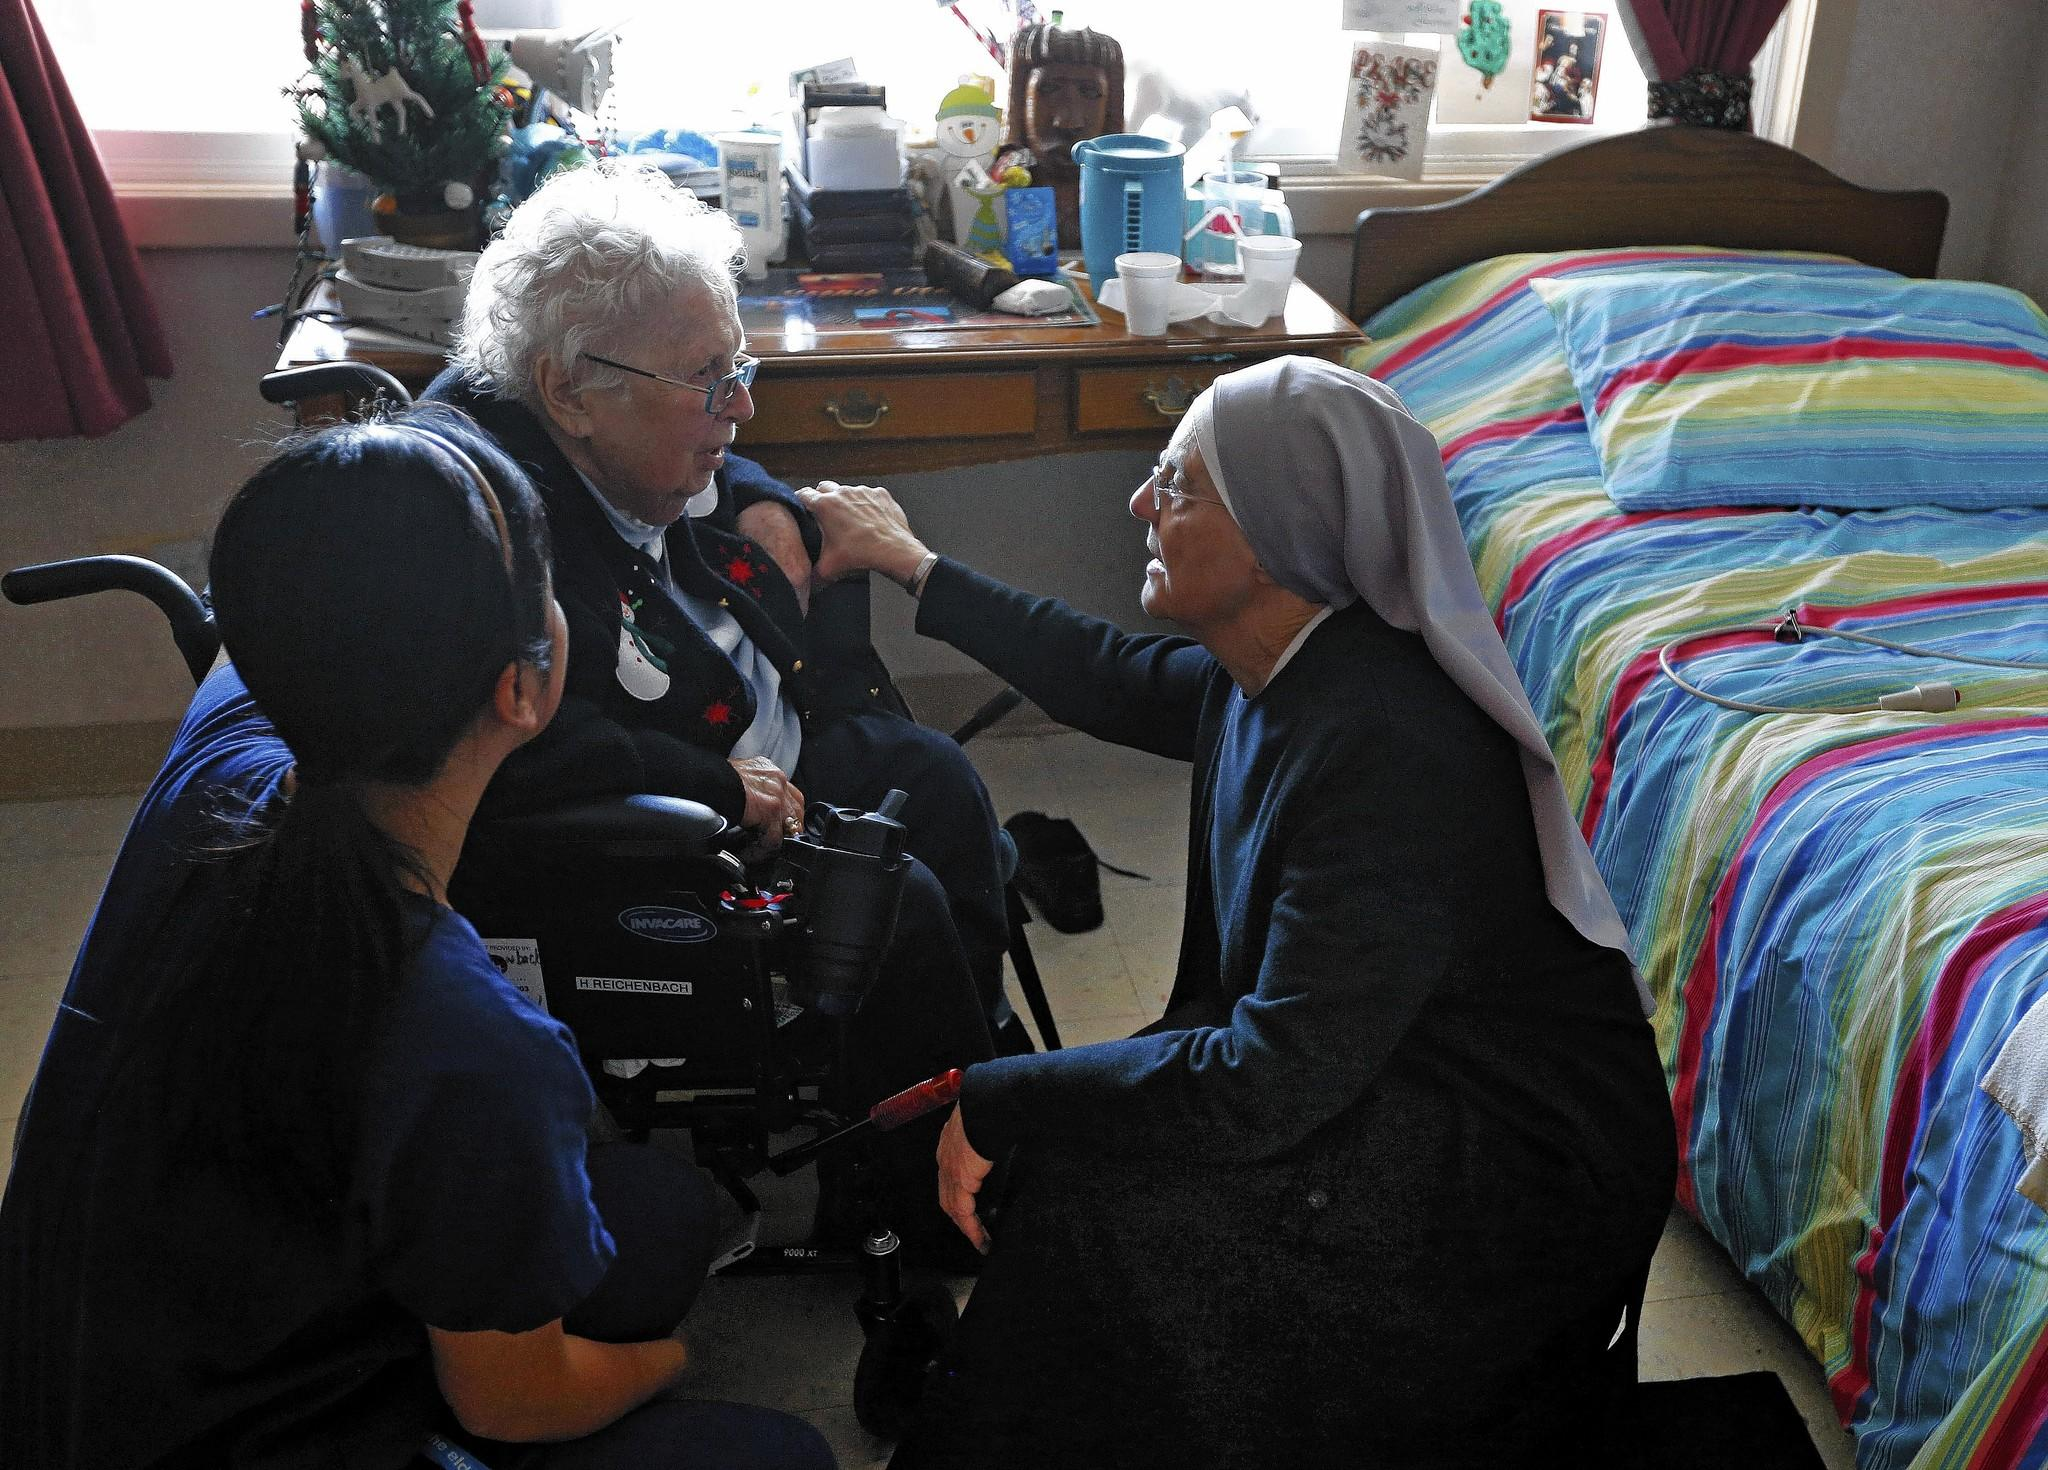 Mother Patricia Mary, right, and nurse Friary Nguyen visit Helen Reichenbach in her room at the Mullen Home for the Aged in Denver, run by the Little Sisters of the Poor. Justice Sonia Sotomayor temporarily blocked the Obama administration's contraceptive mandate at the nuns' request.